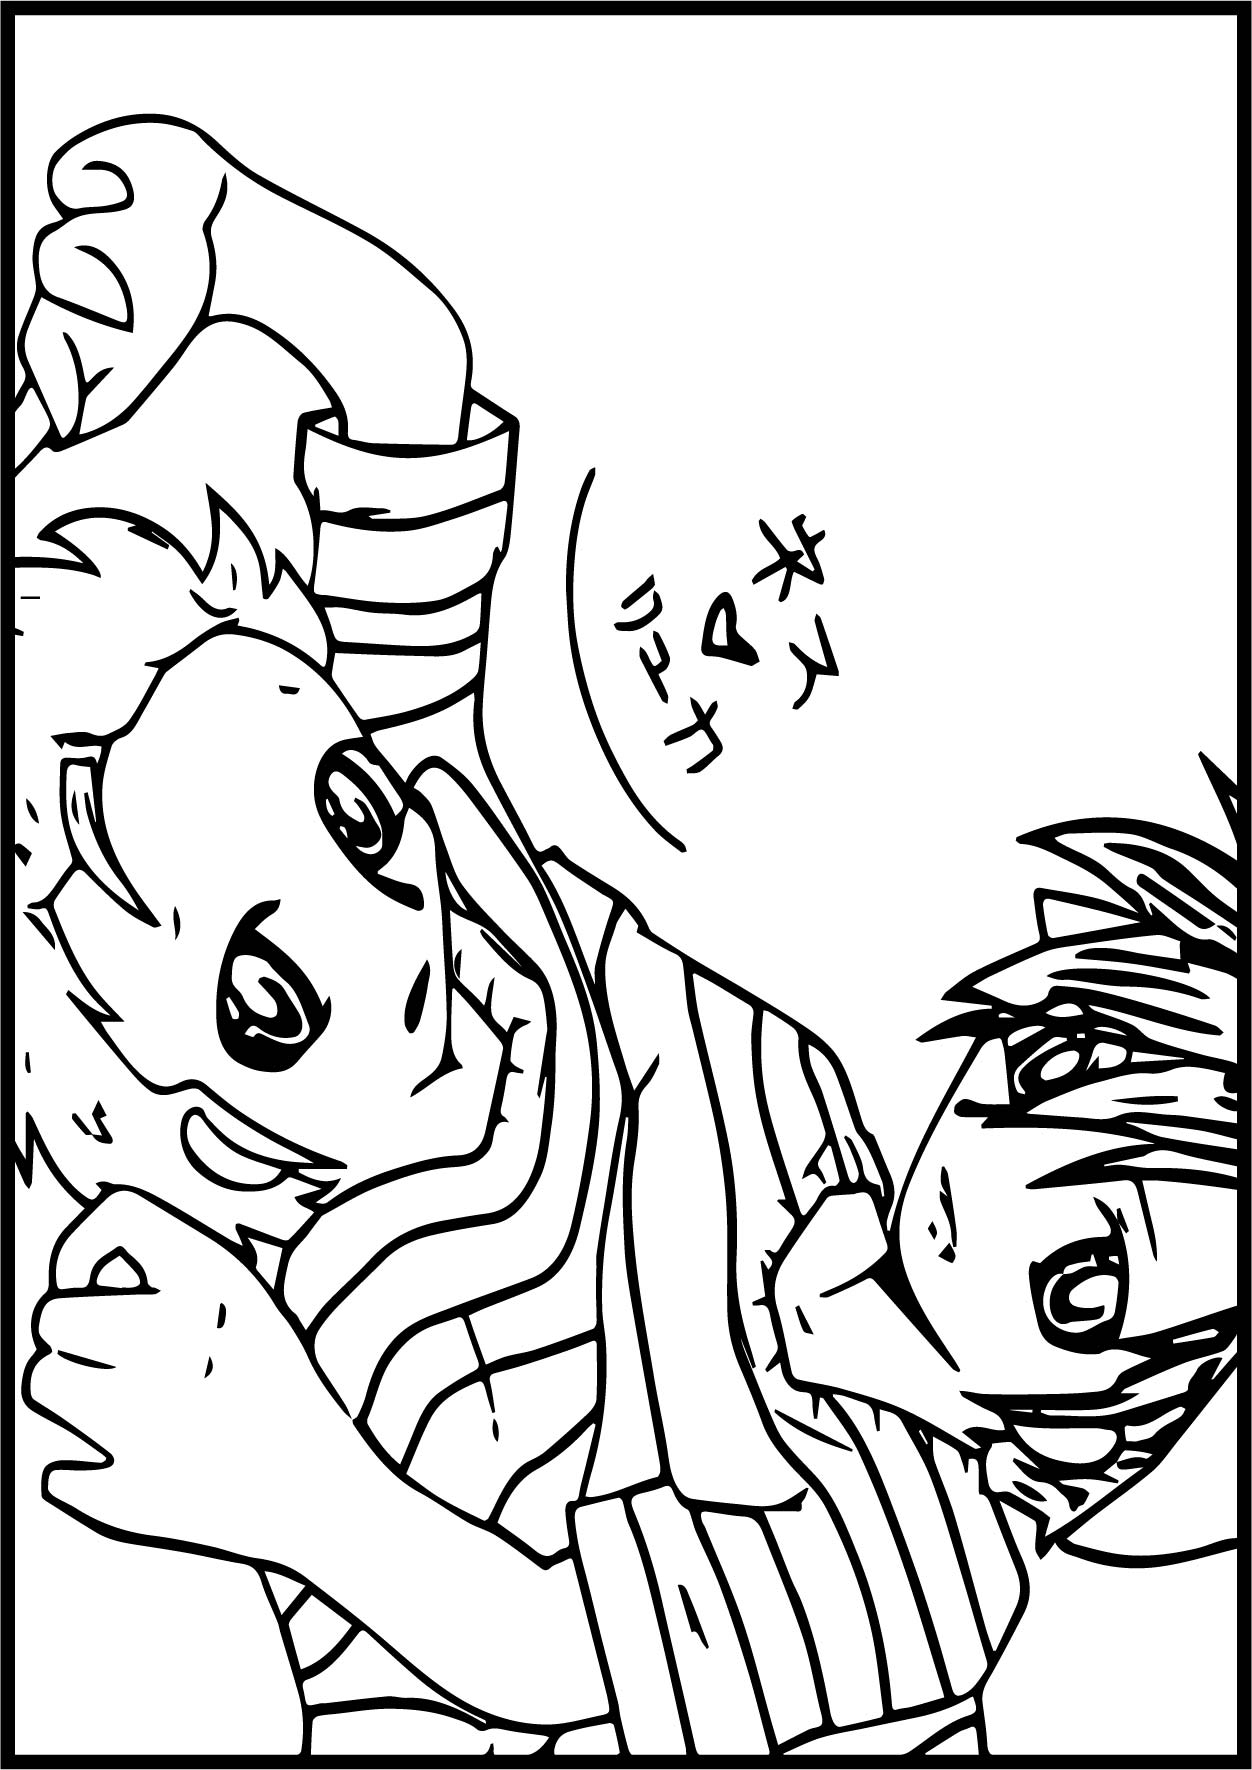 Anime Boys Fight Coloring Page